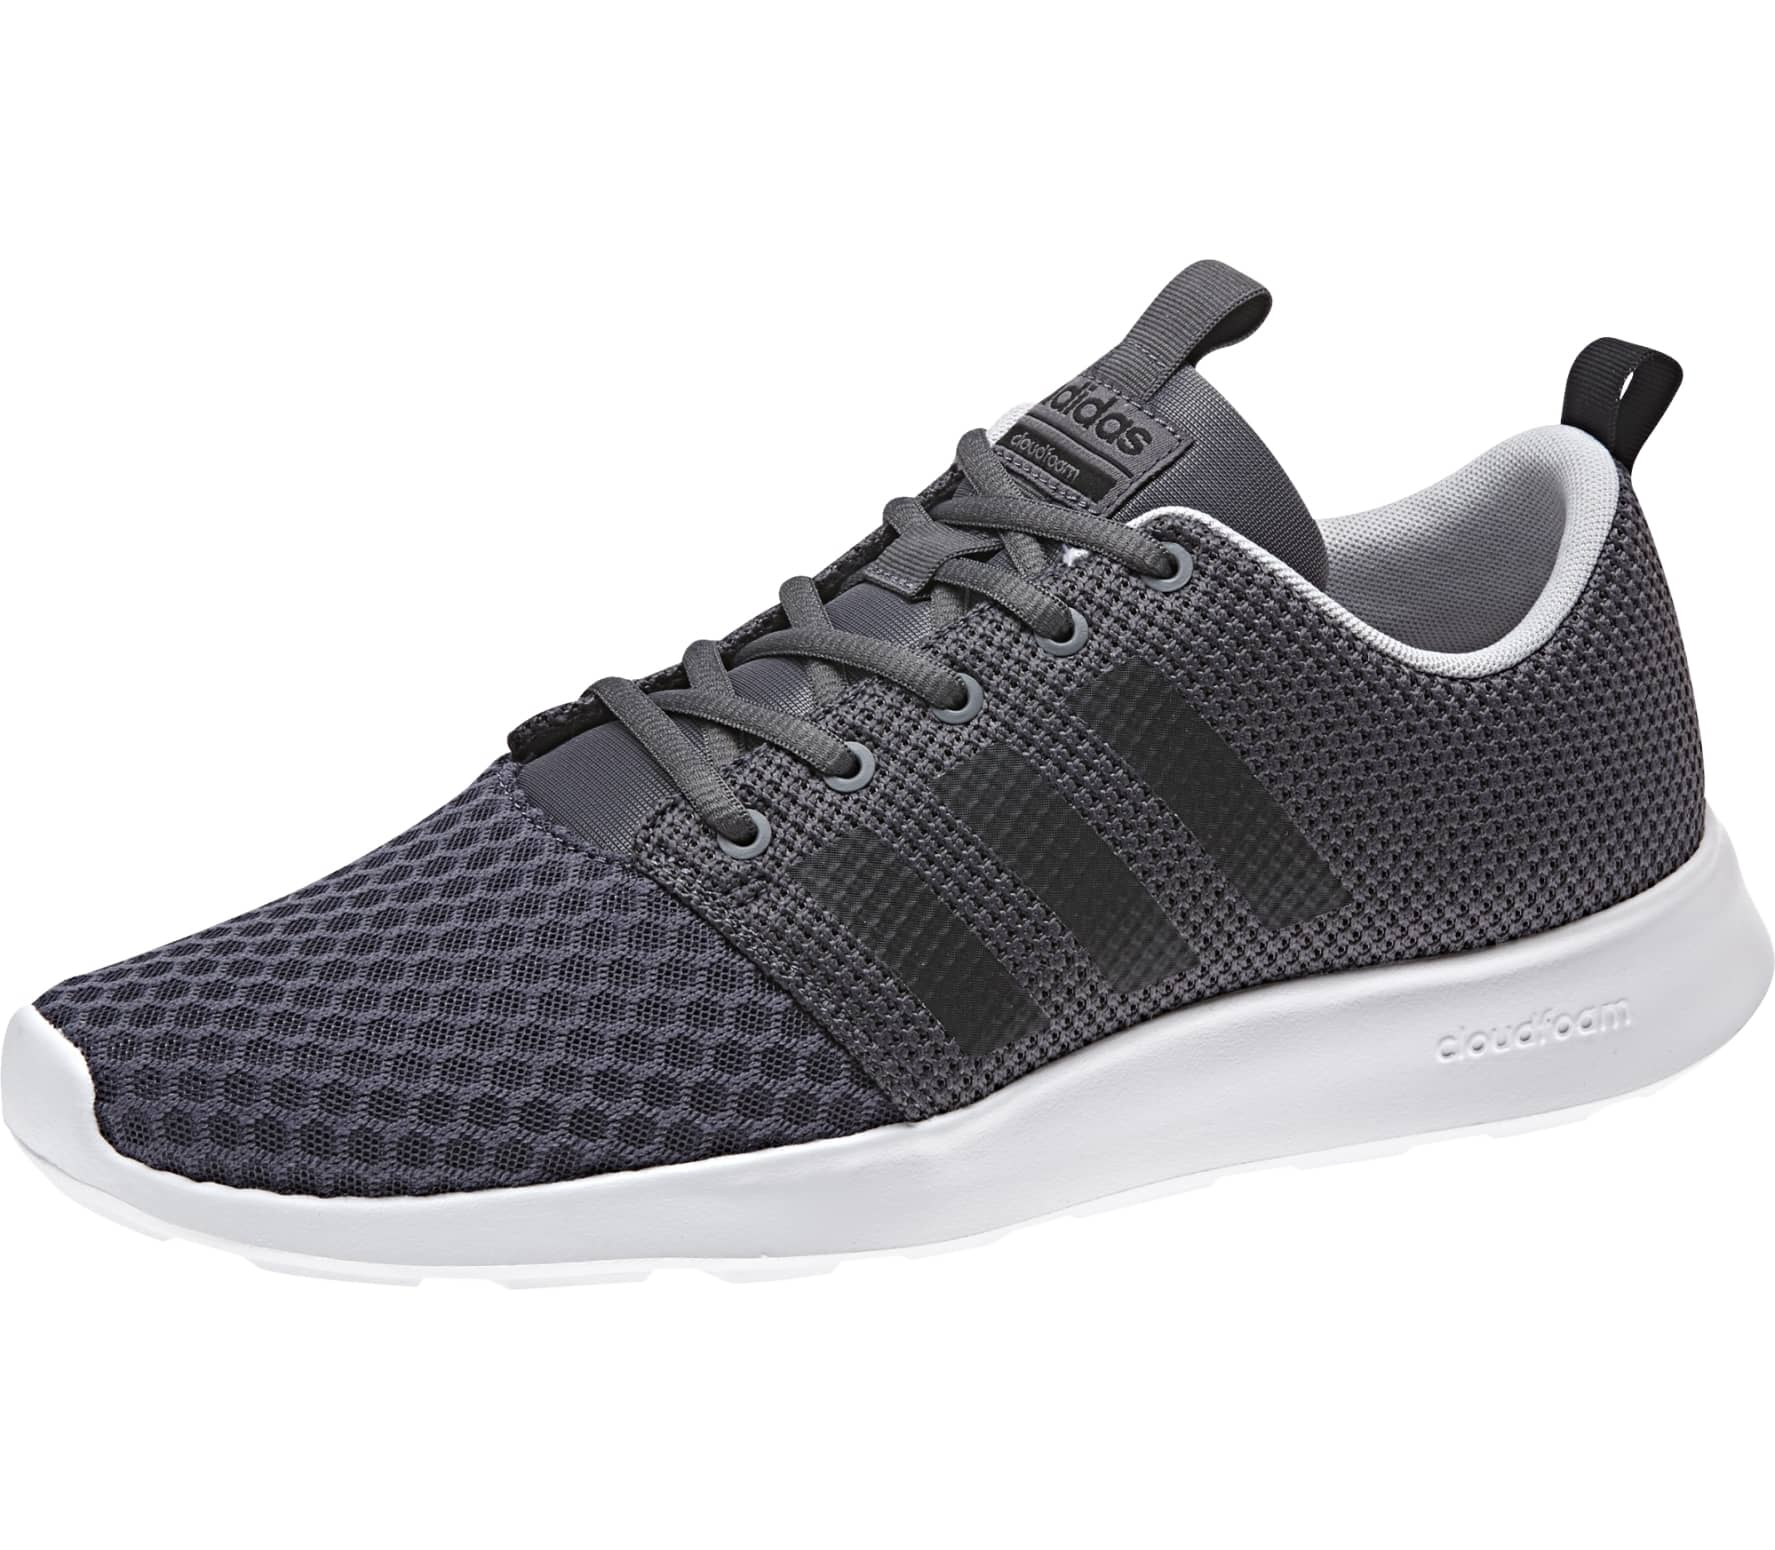 timeless design 6177d 7e93f ... dame neo 4fd5d 8ce9c spain adidas neo cf swift racer mens running shoes  dark grey black c40c7 ea054 ...